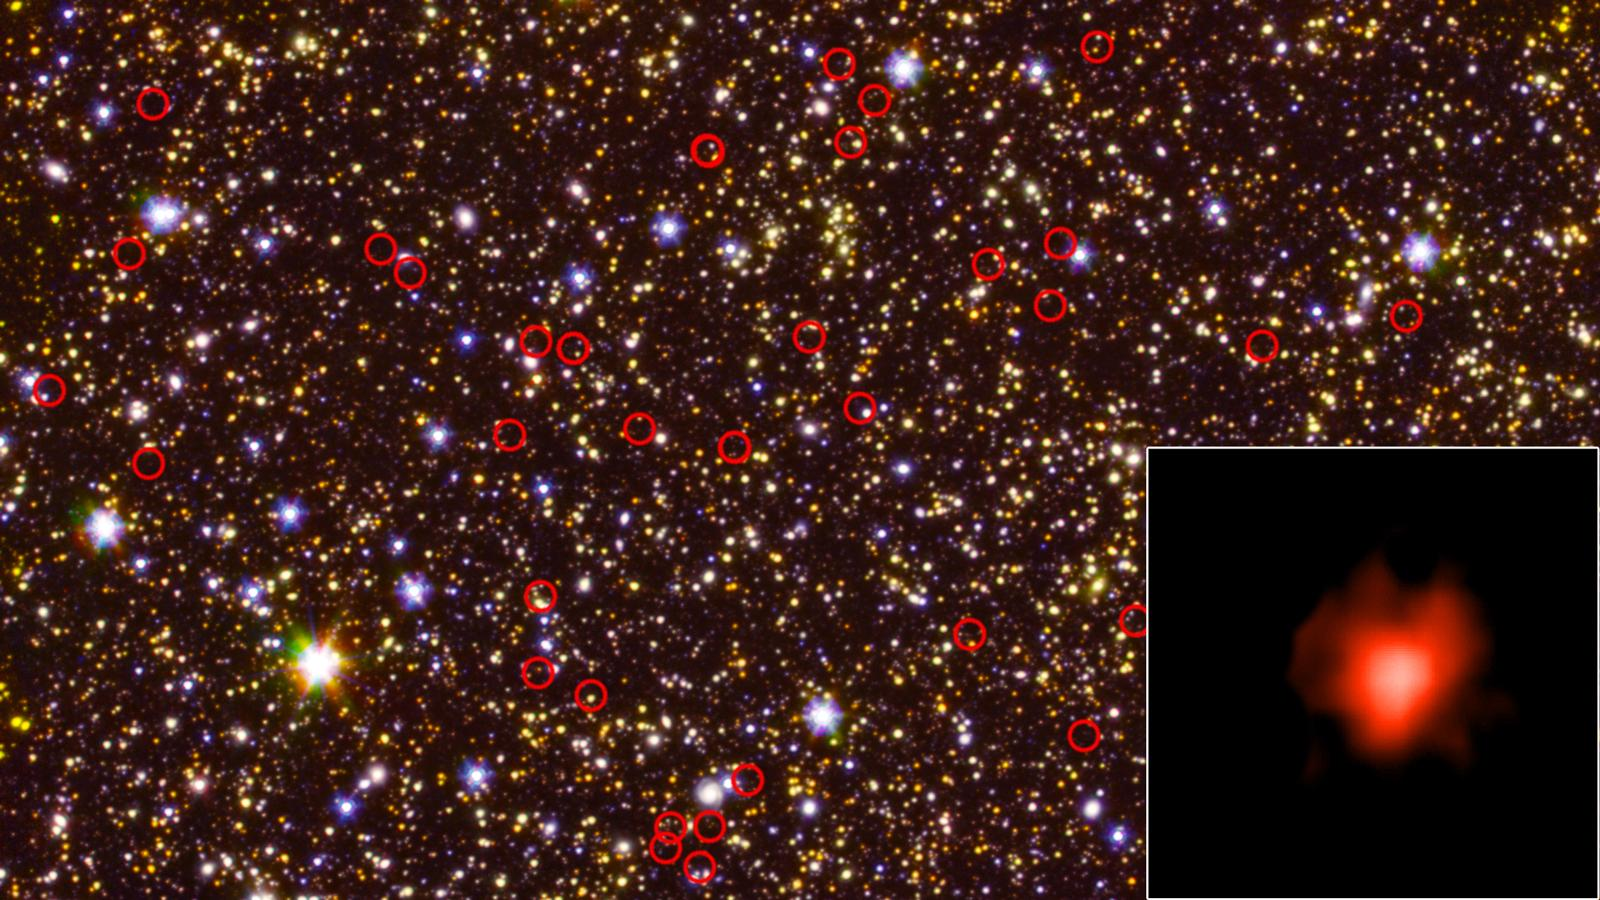 An annotated photo a deep-field view of the sky taken by NASA's Spitzer Space Telescope. Circled in red are very faint, distant galaxies, while the inset photo shows light collected from one of those galaxies during a long-duration observation. Photo Credit: NASA/JPL-Caltech/ESA/Spitzer/P. Oesch/S. De Barros/I.Labbe